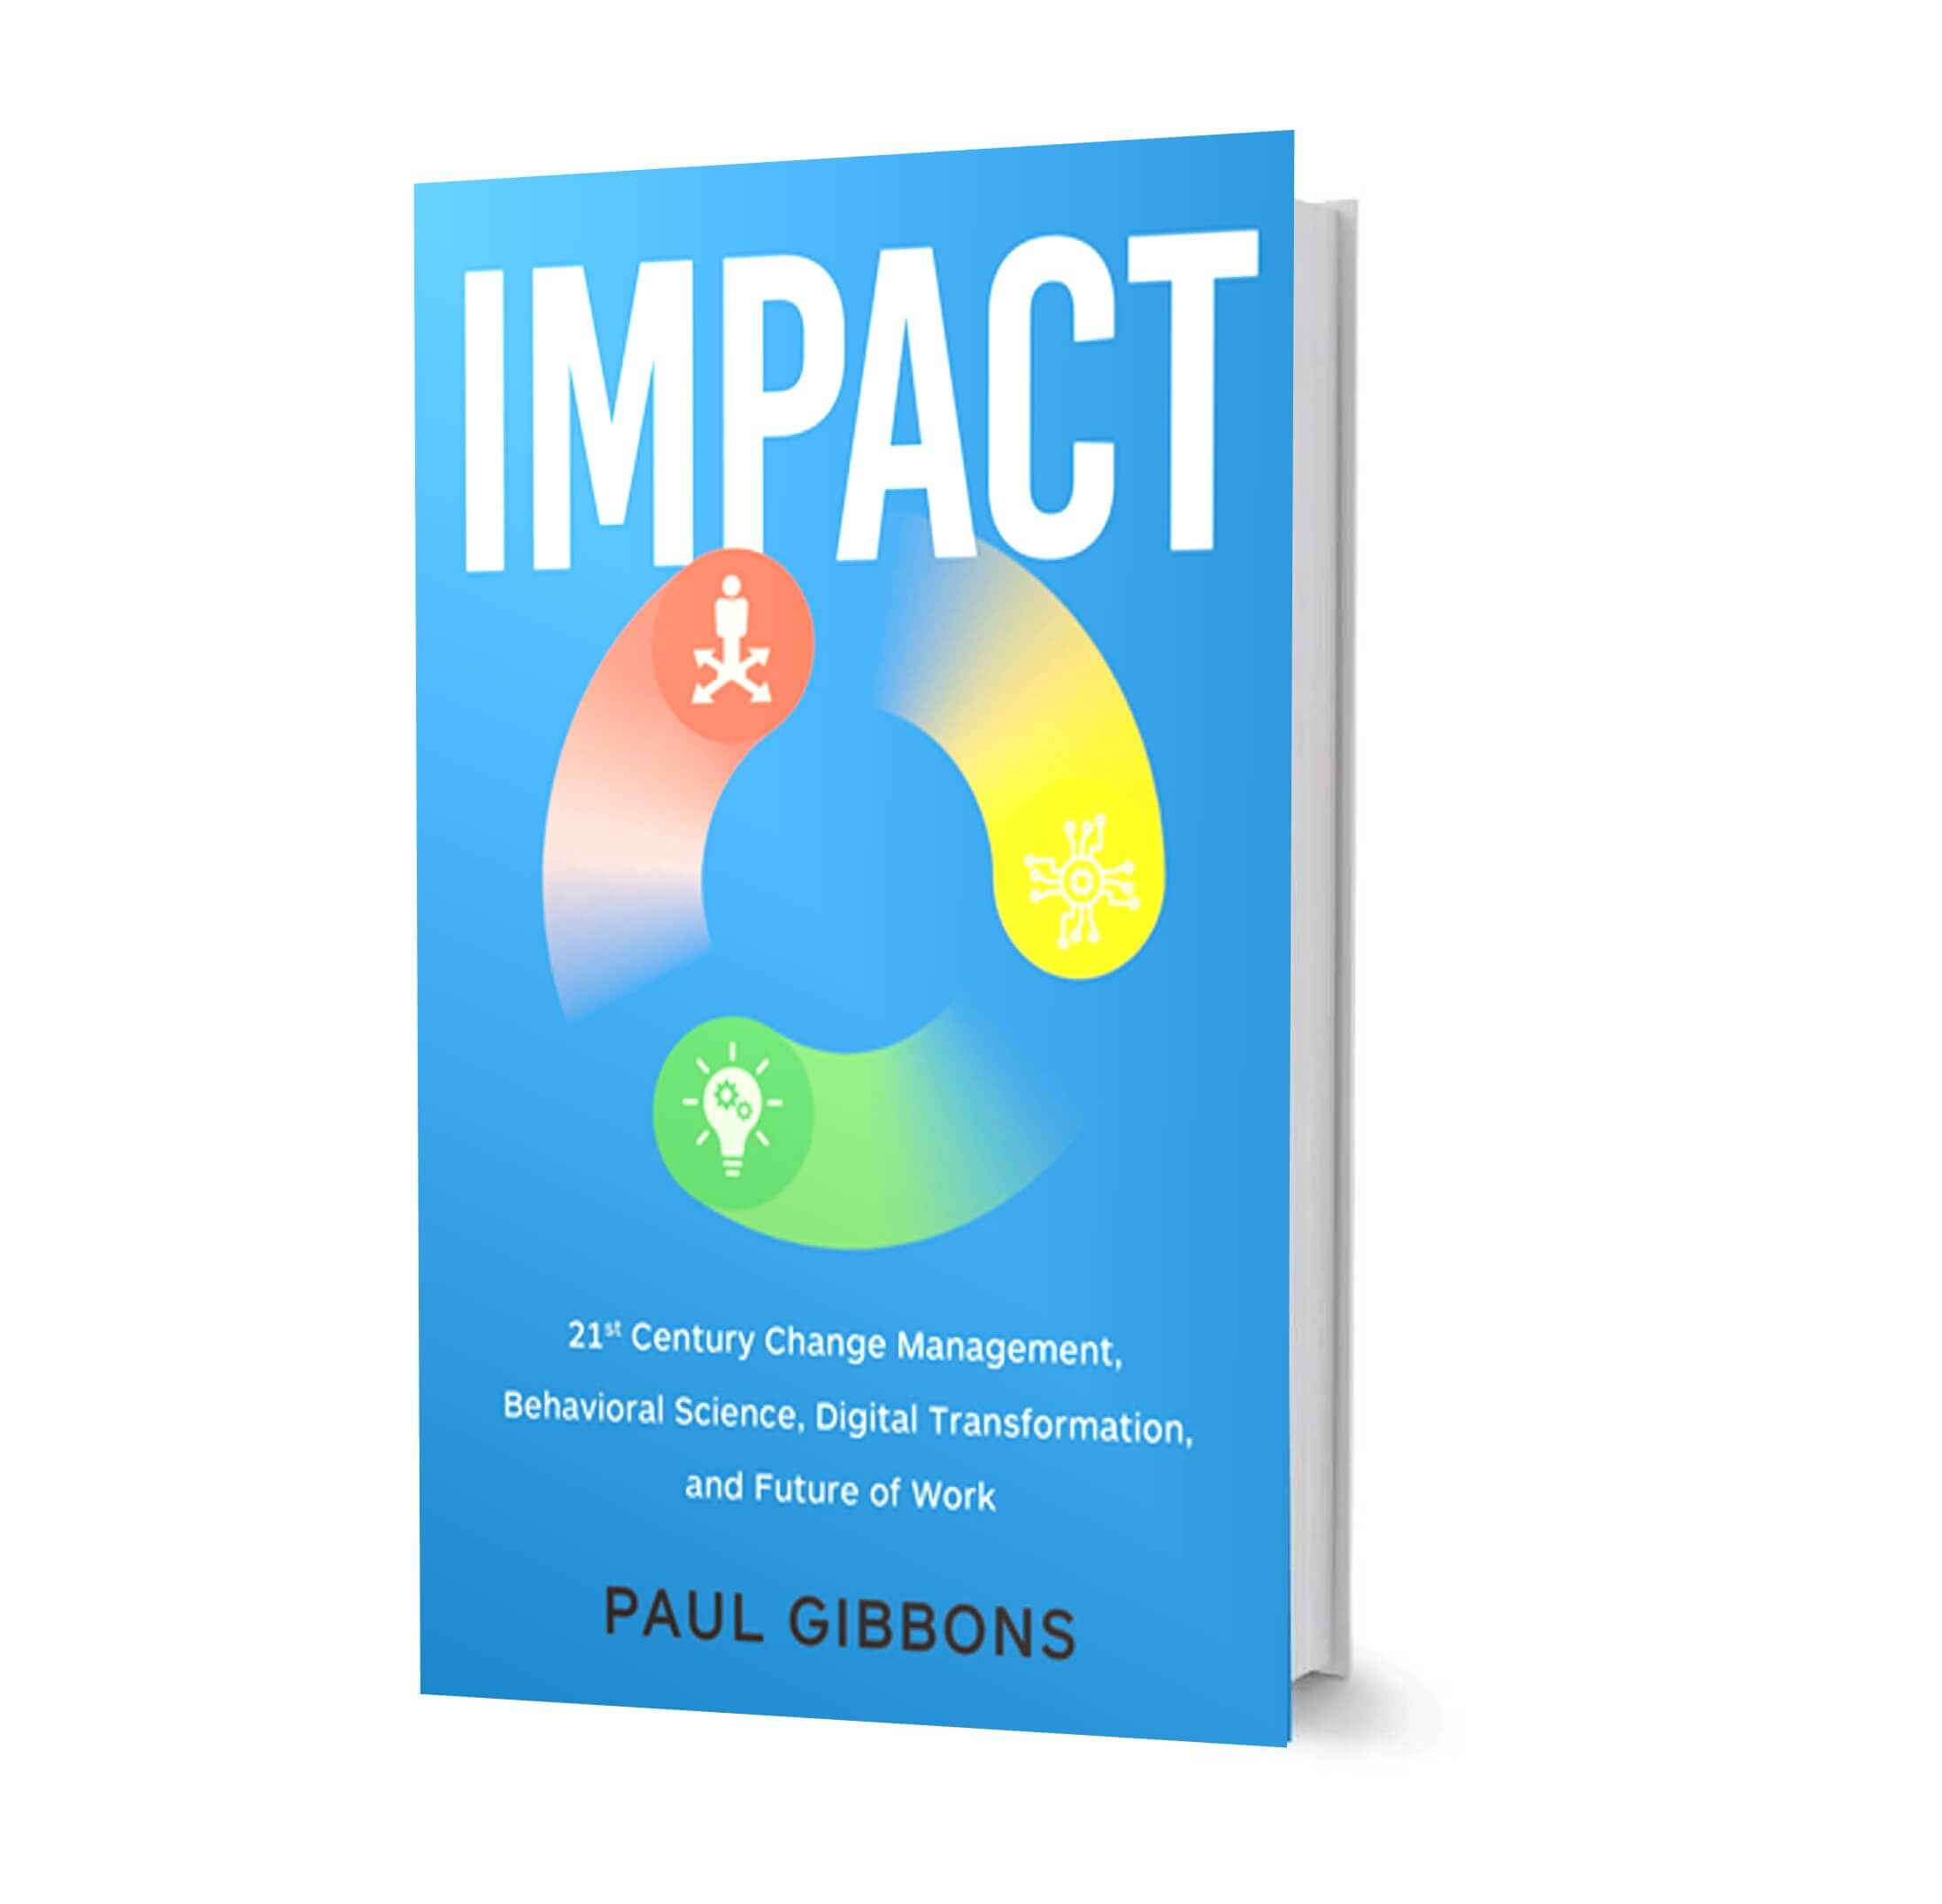 Impact by Paul Gibbons  Digital transformation, behavioral science, future of work, and 21st century change management